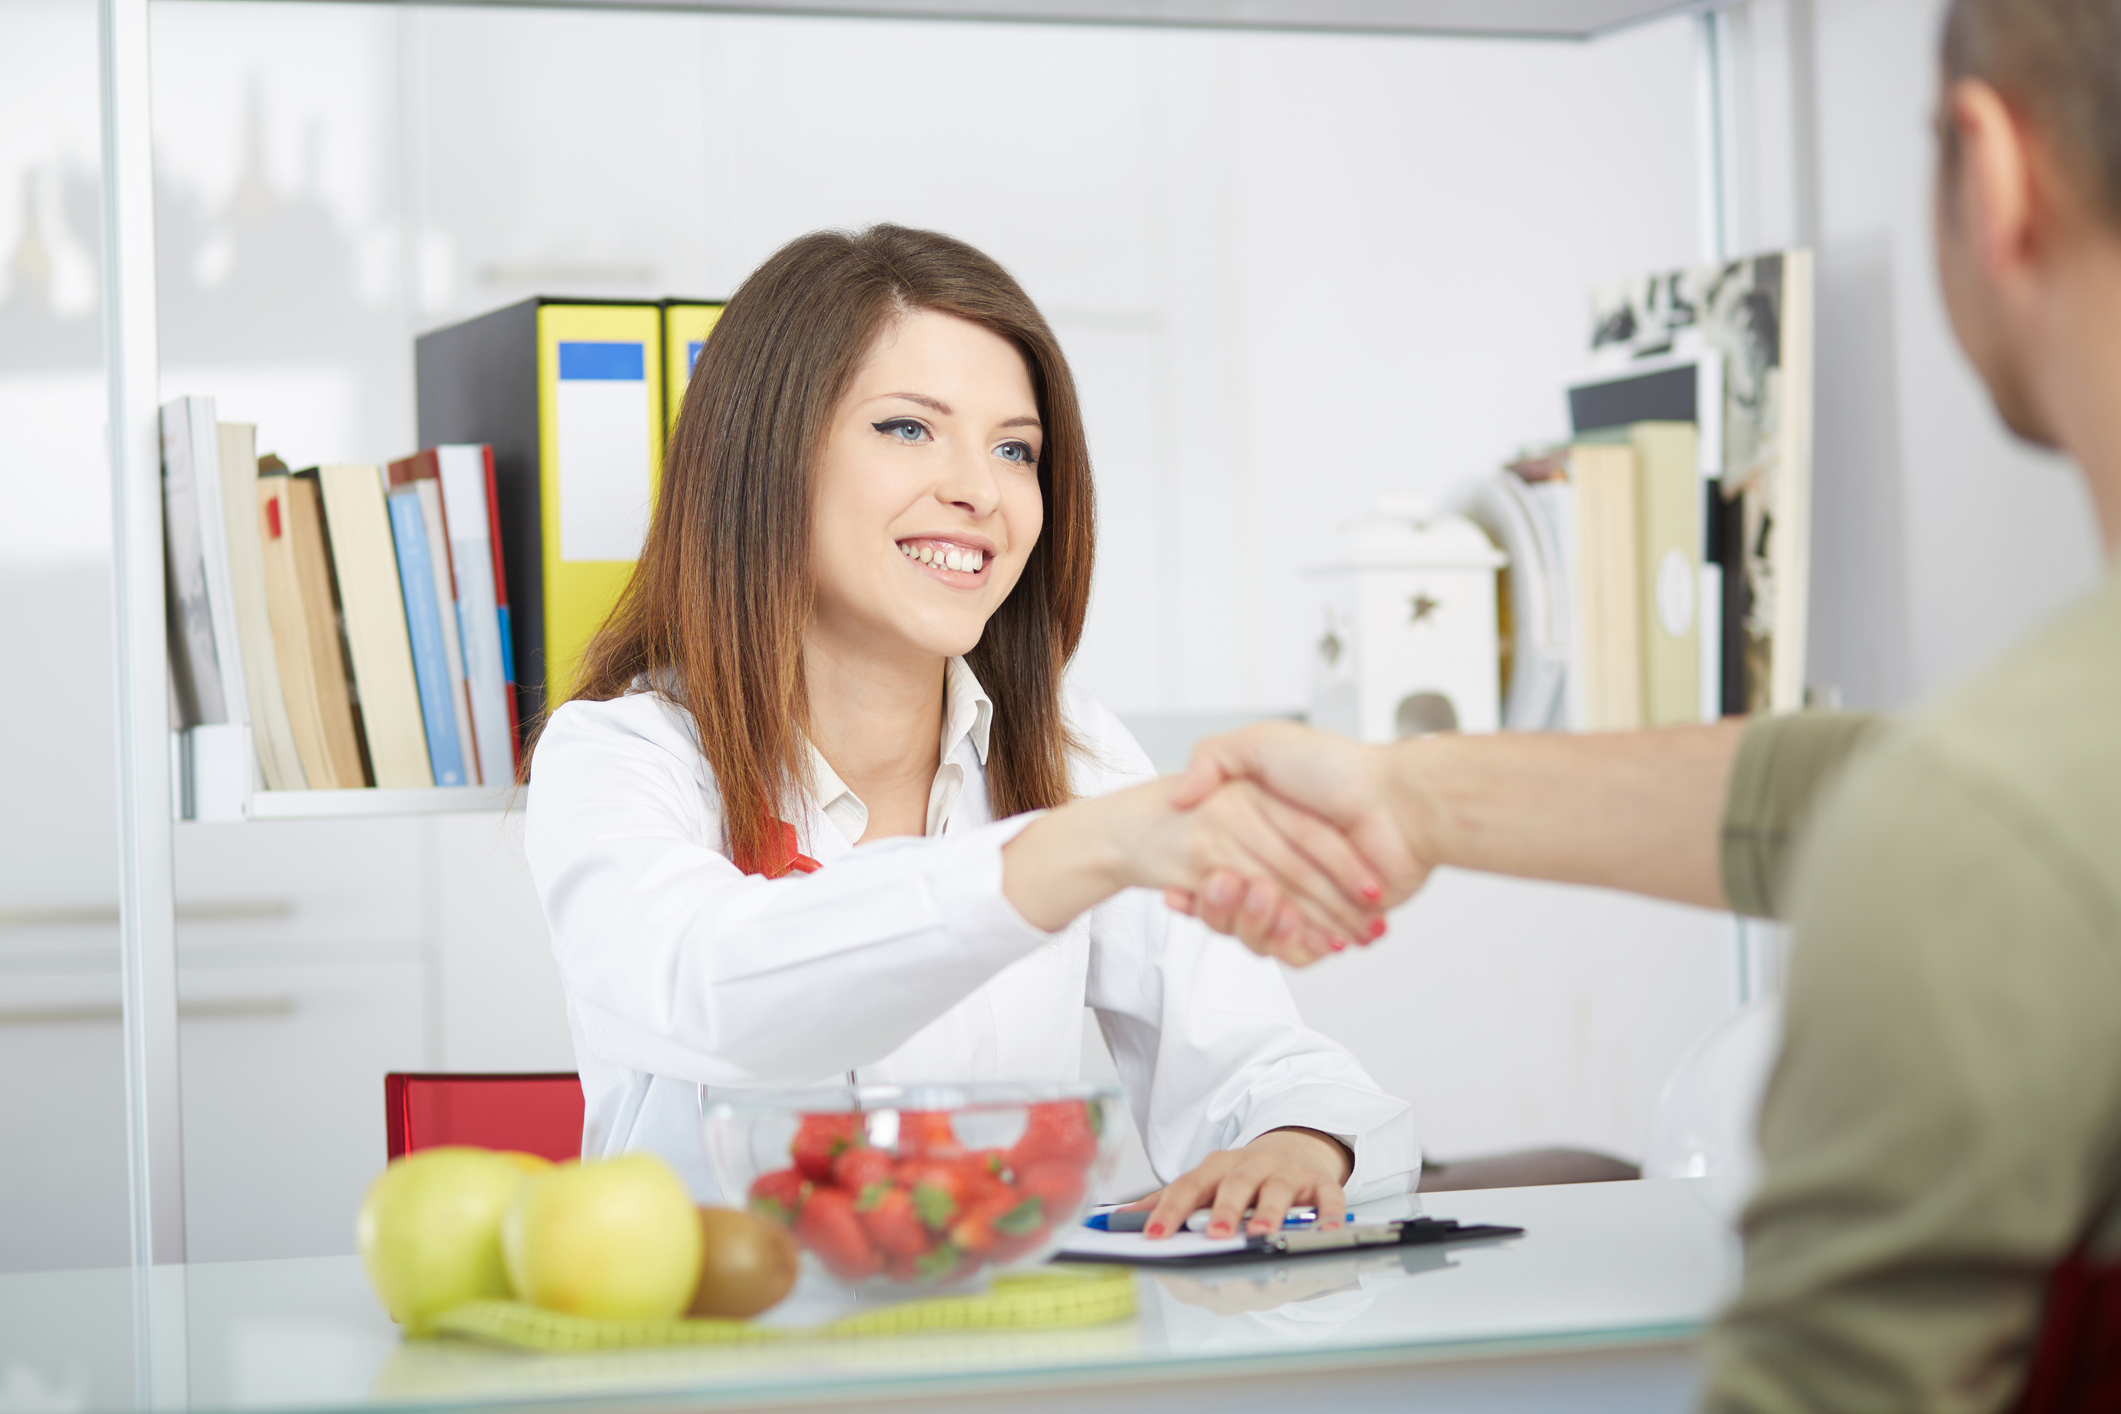 How to Become a Nutritionist | LoveToKnow